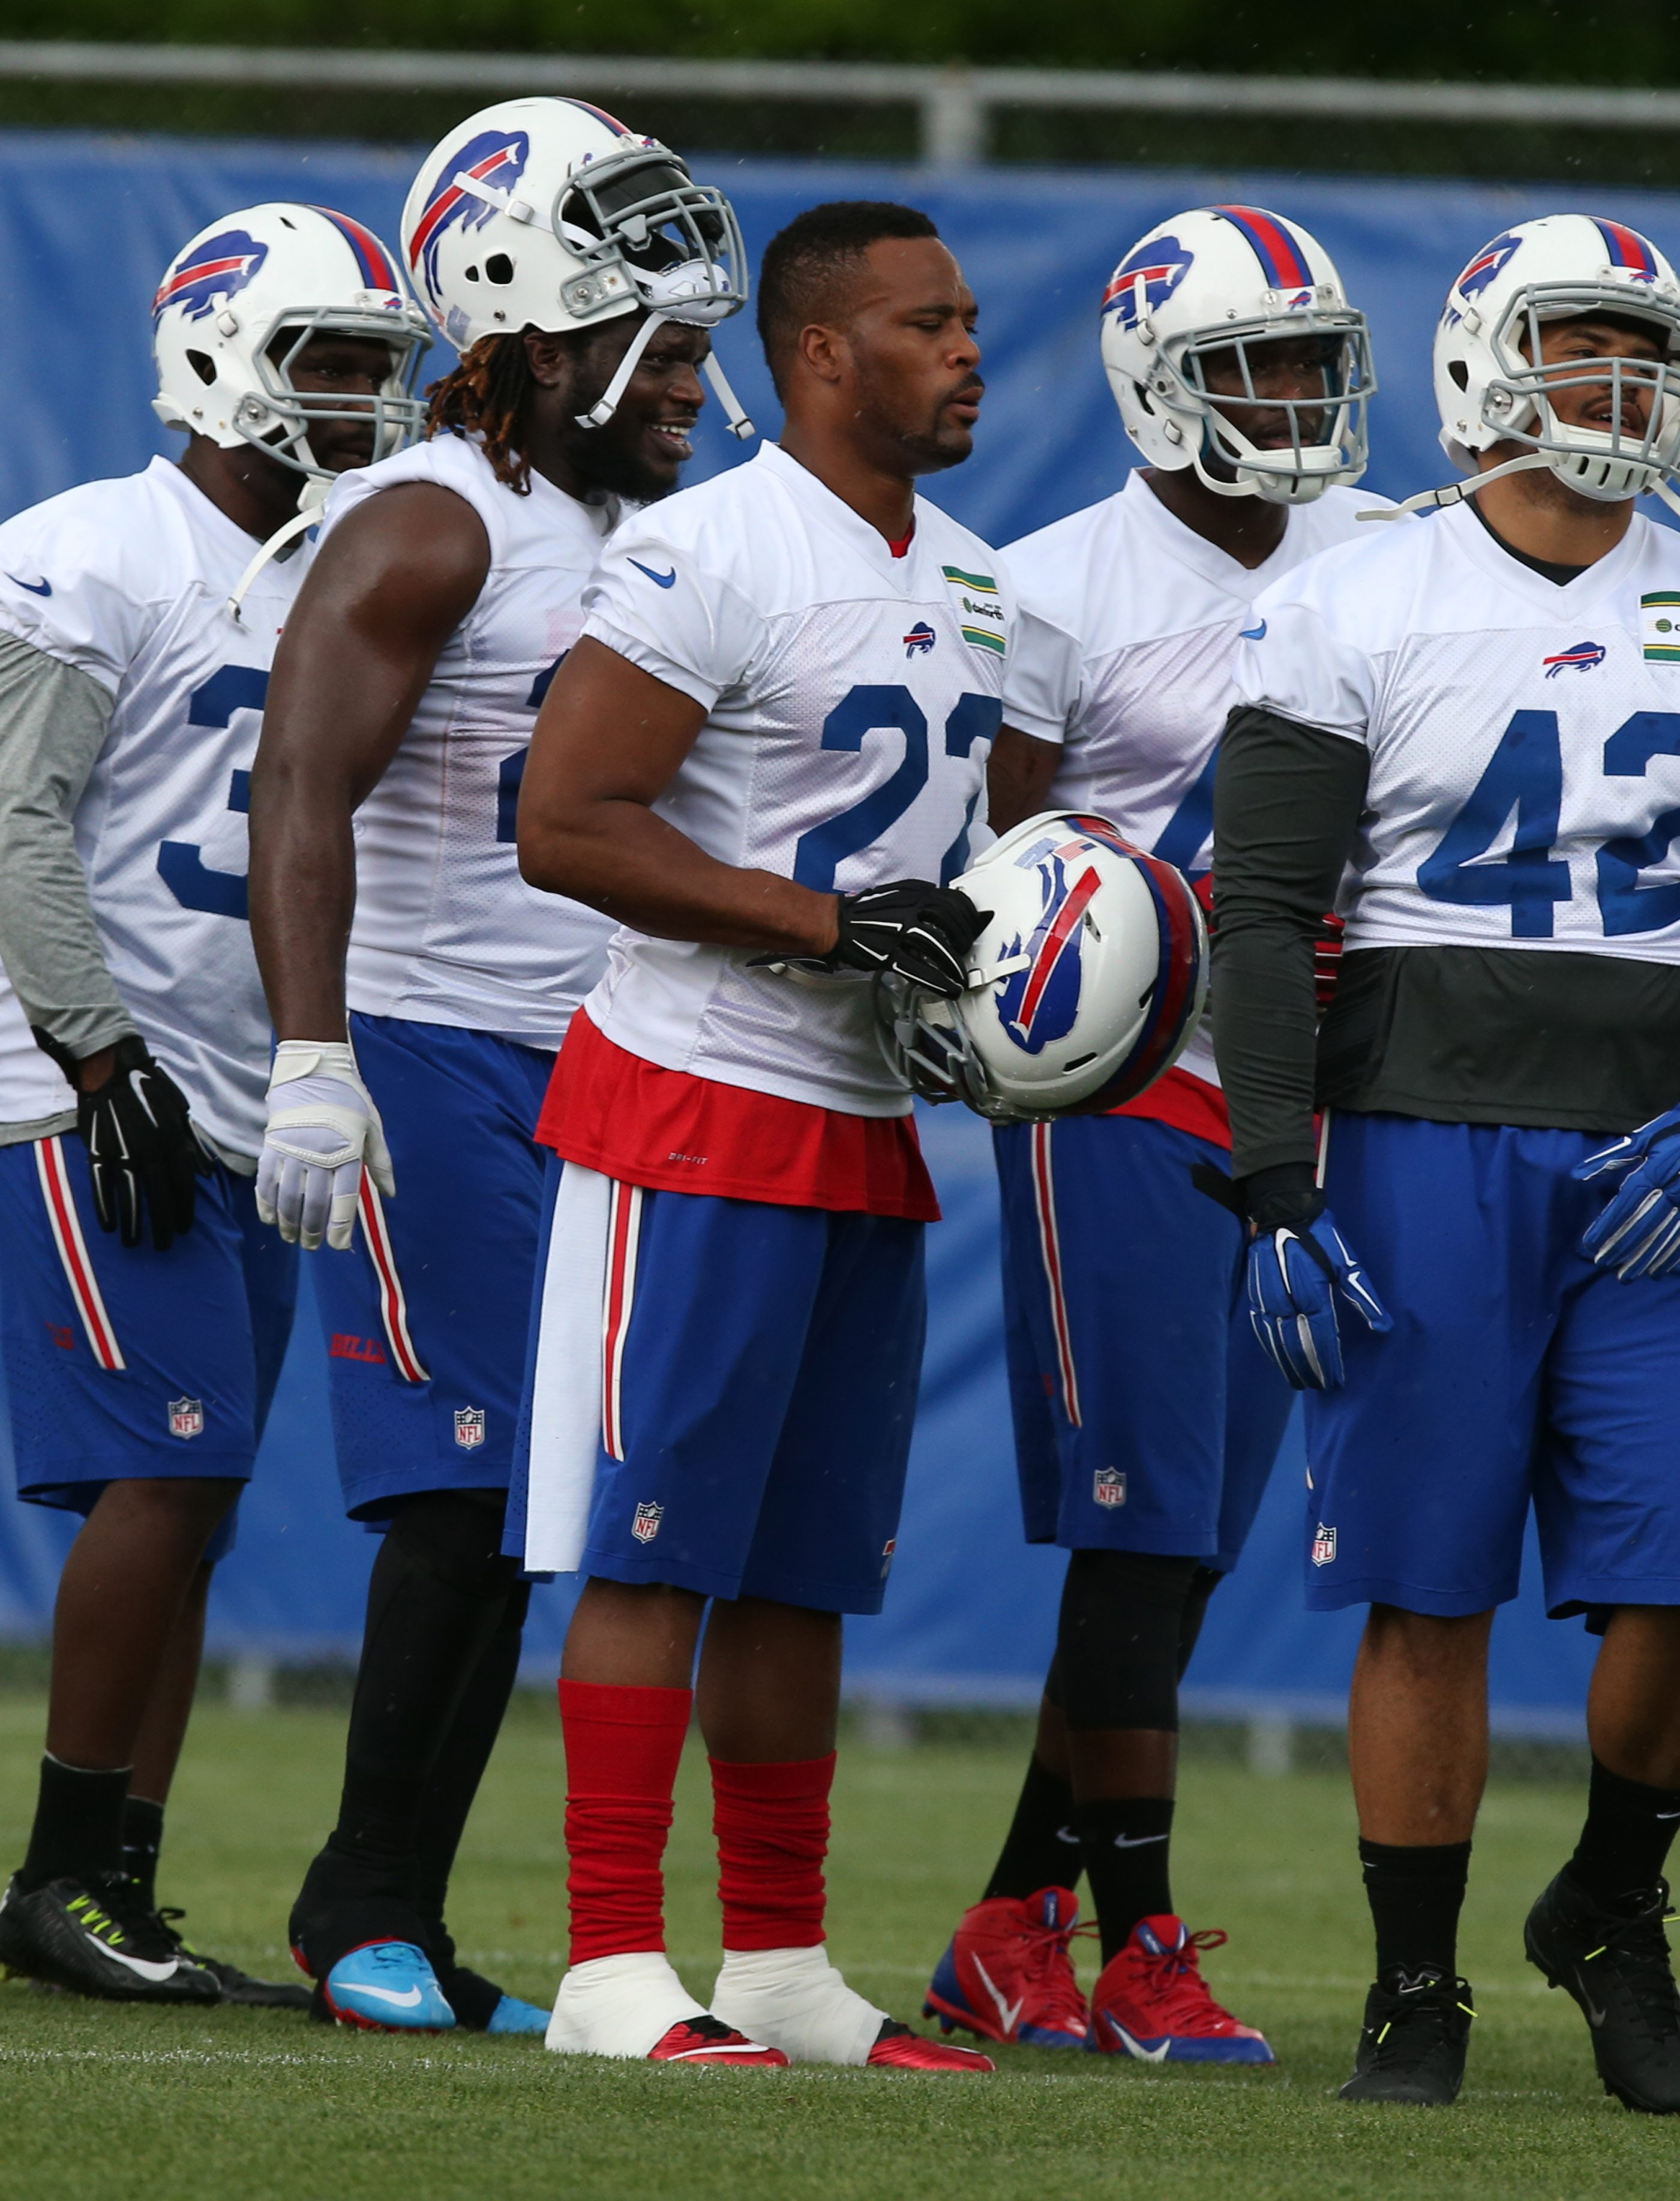 Because of his age, it's still possible Fred Jackson could be cut before the start of the season.